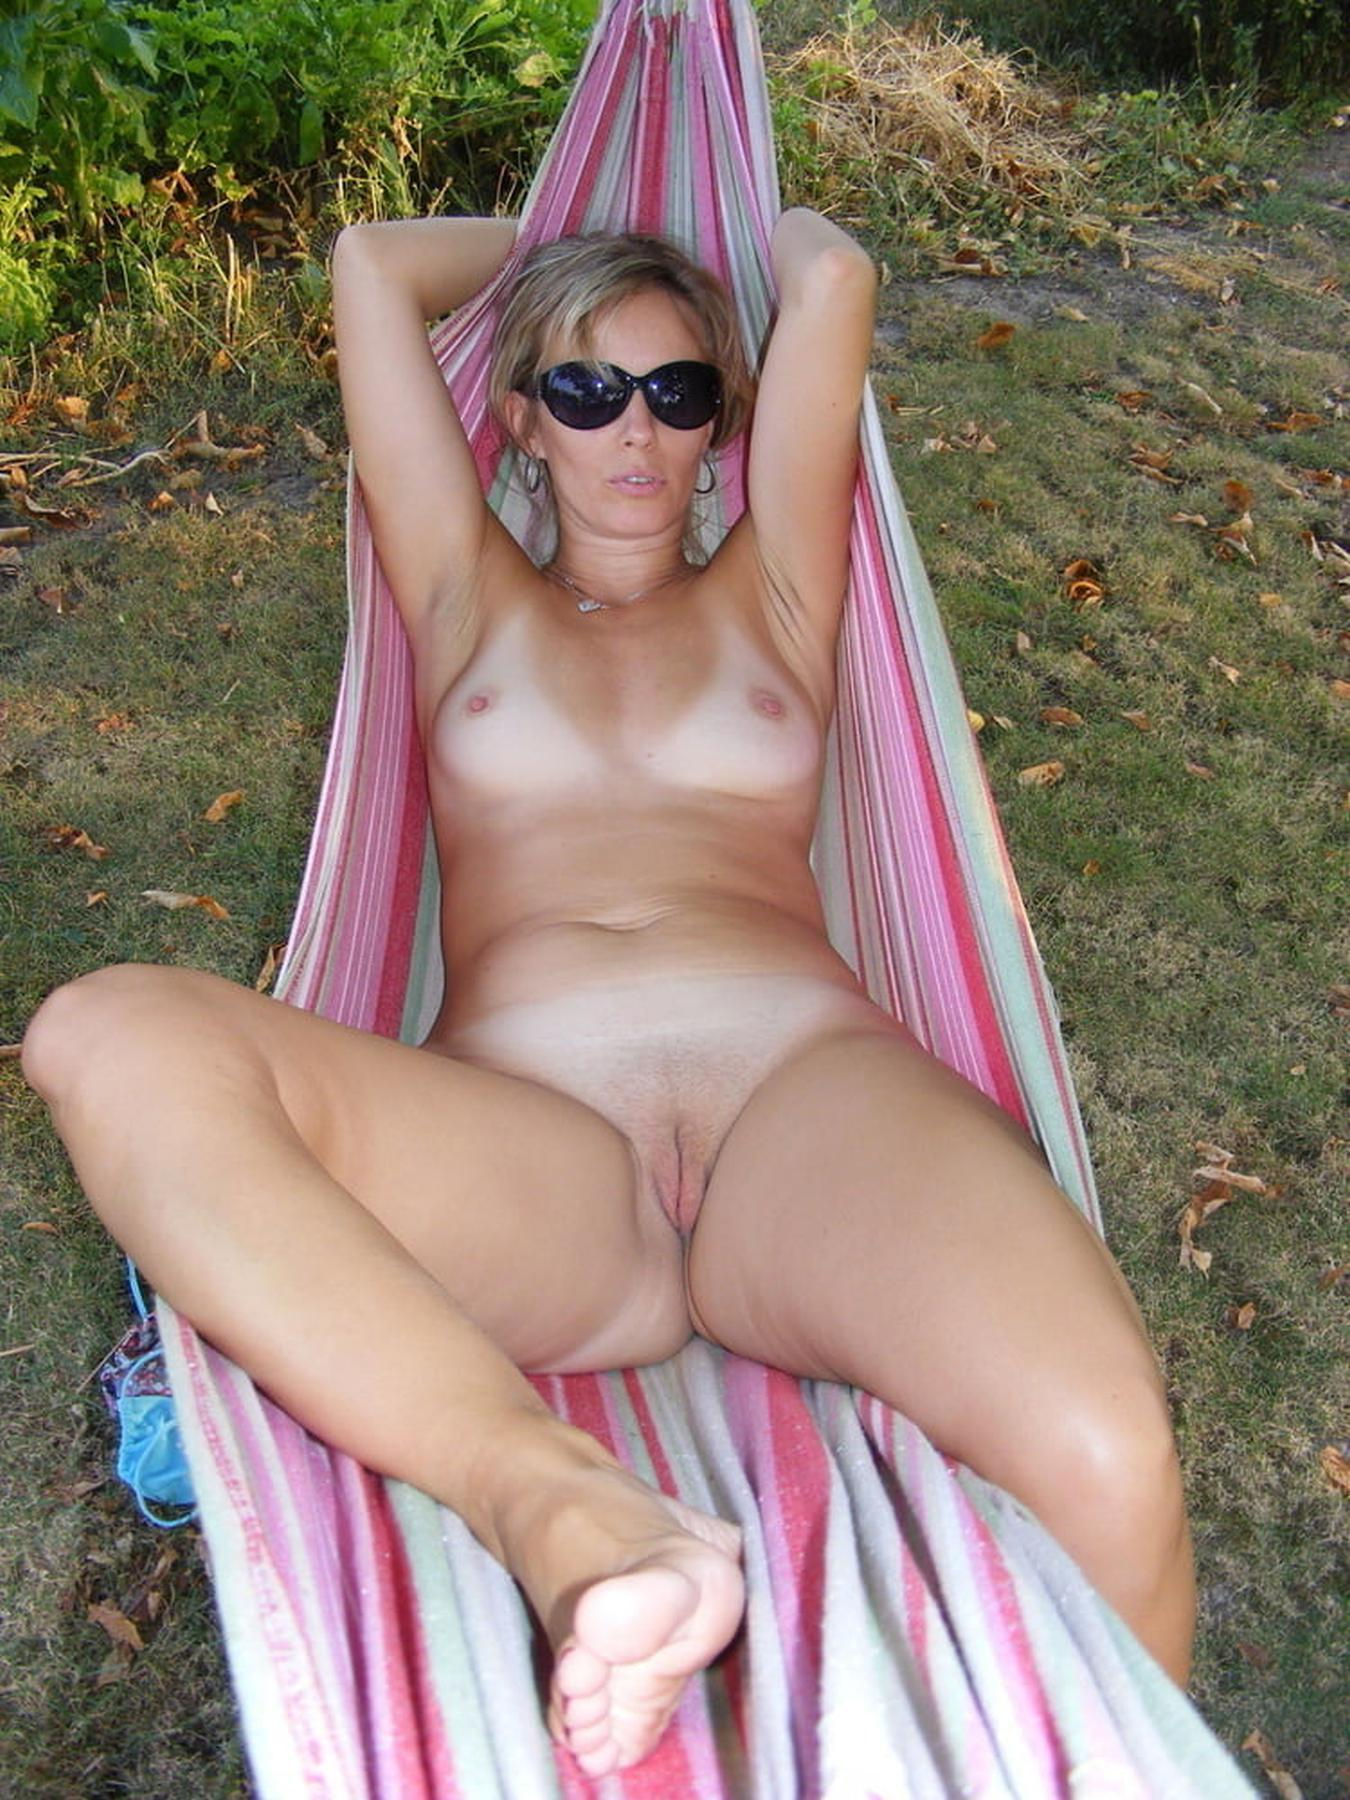 Milf Cougar spreads her bare legs on a hammock outdoor. Sexy mature blonde with sunglasses sunbathing naked on the hammock